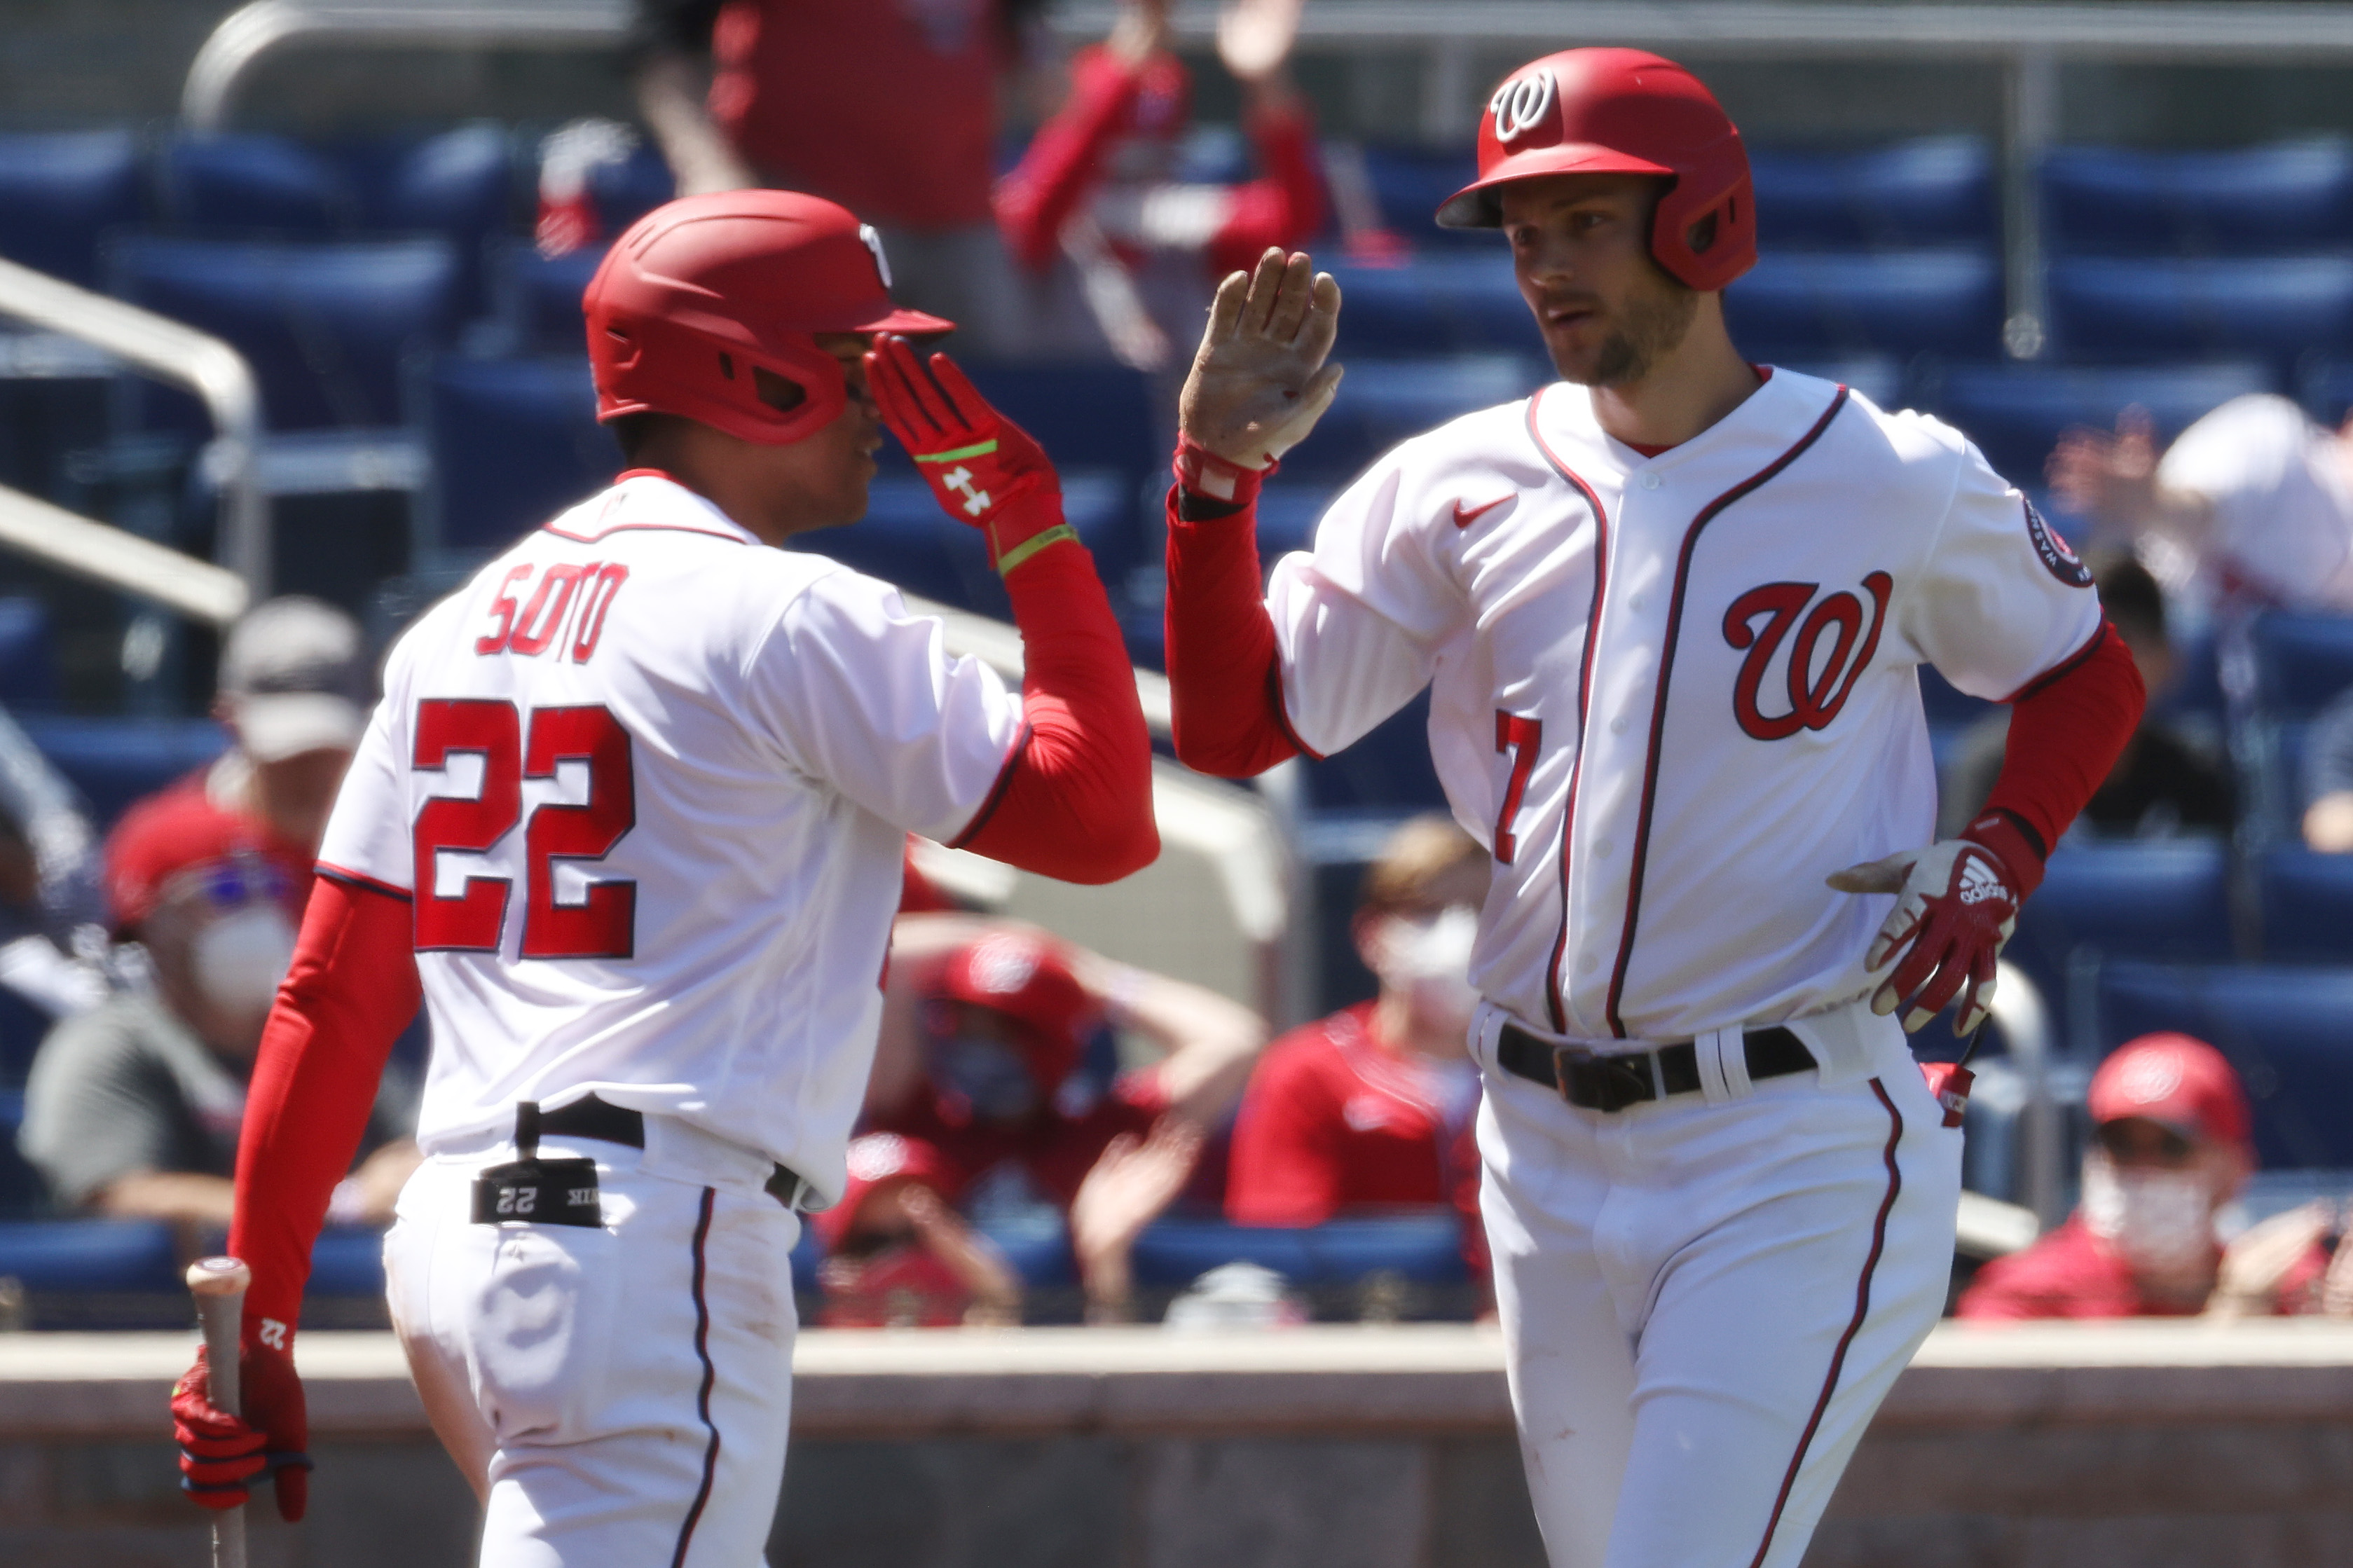 Washington Nationals shortstop Trea Turner celebrates with Nationals left fielder Juan Soto after hitting a home run against the Arizona Diamondbacks in the third inning at Nationals Park.